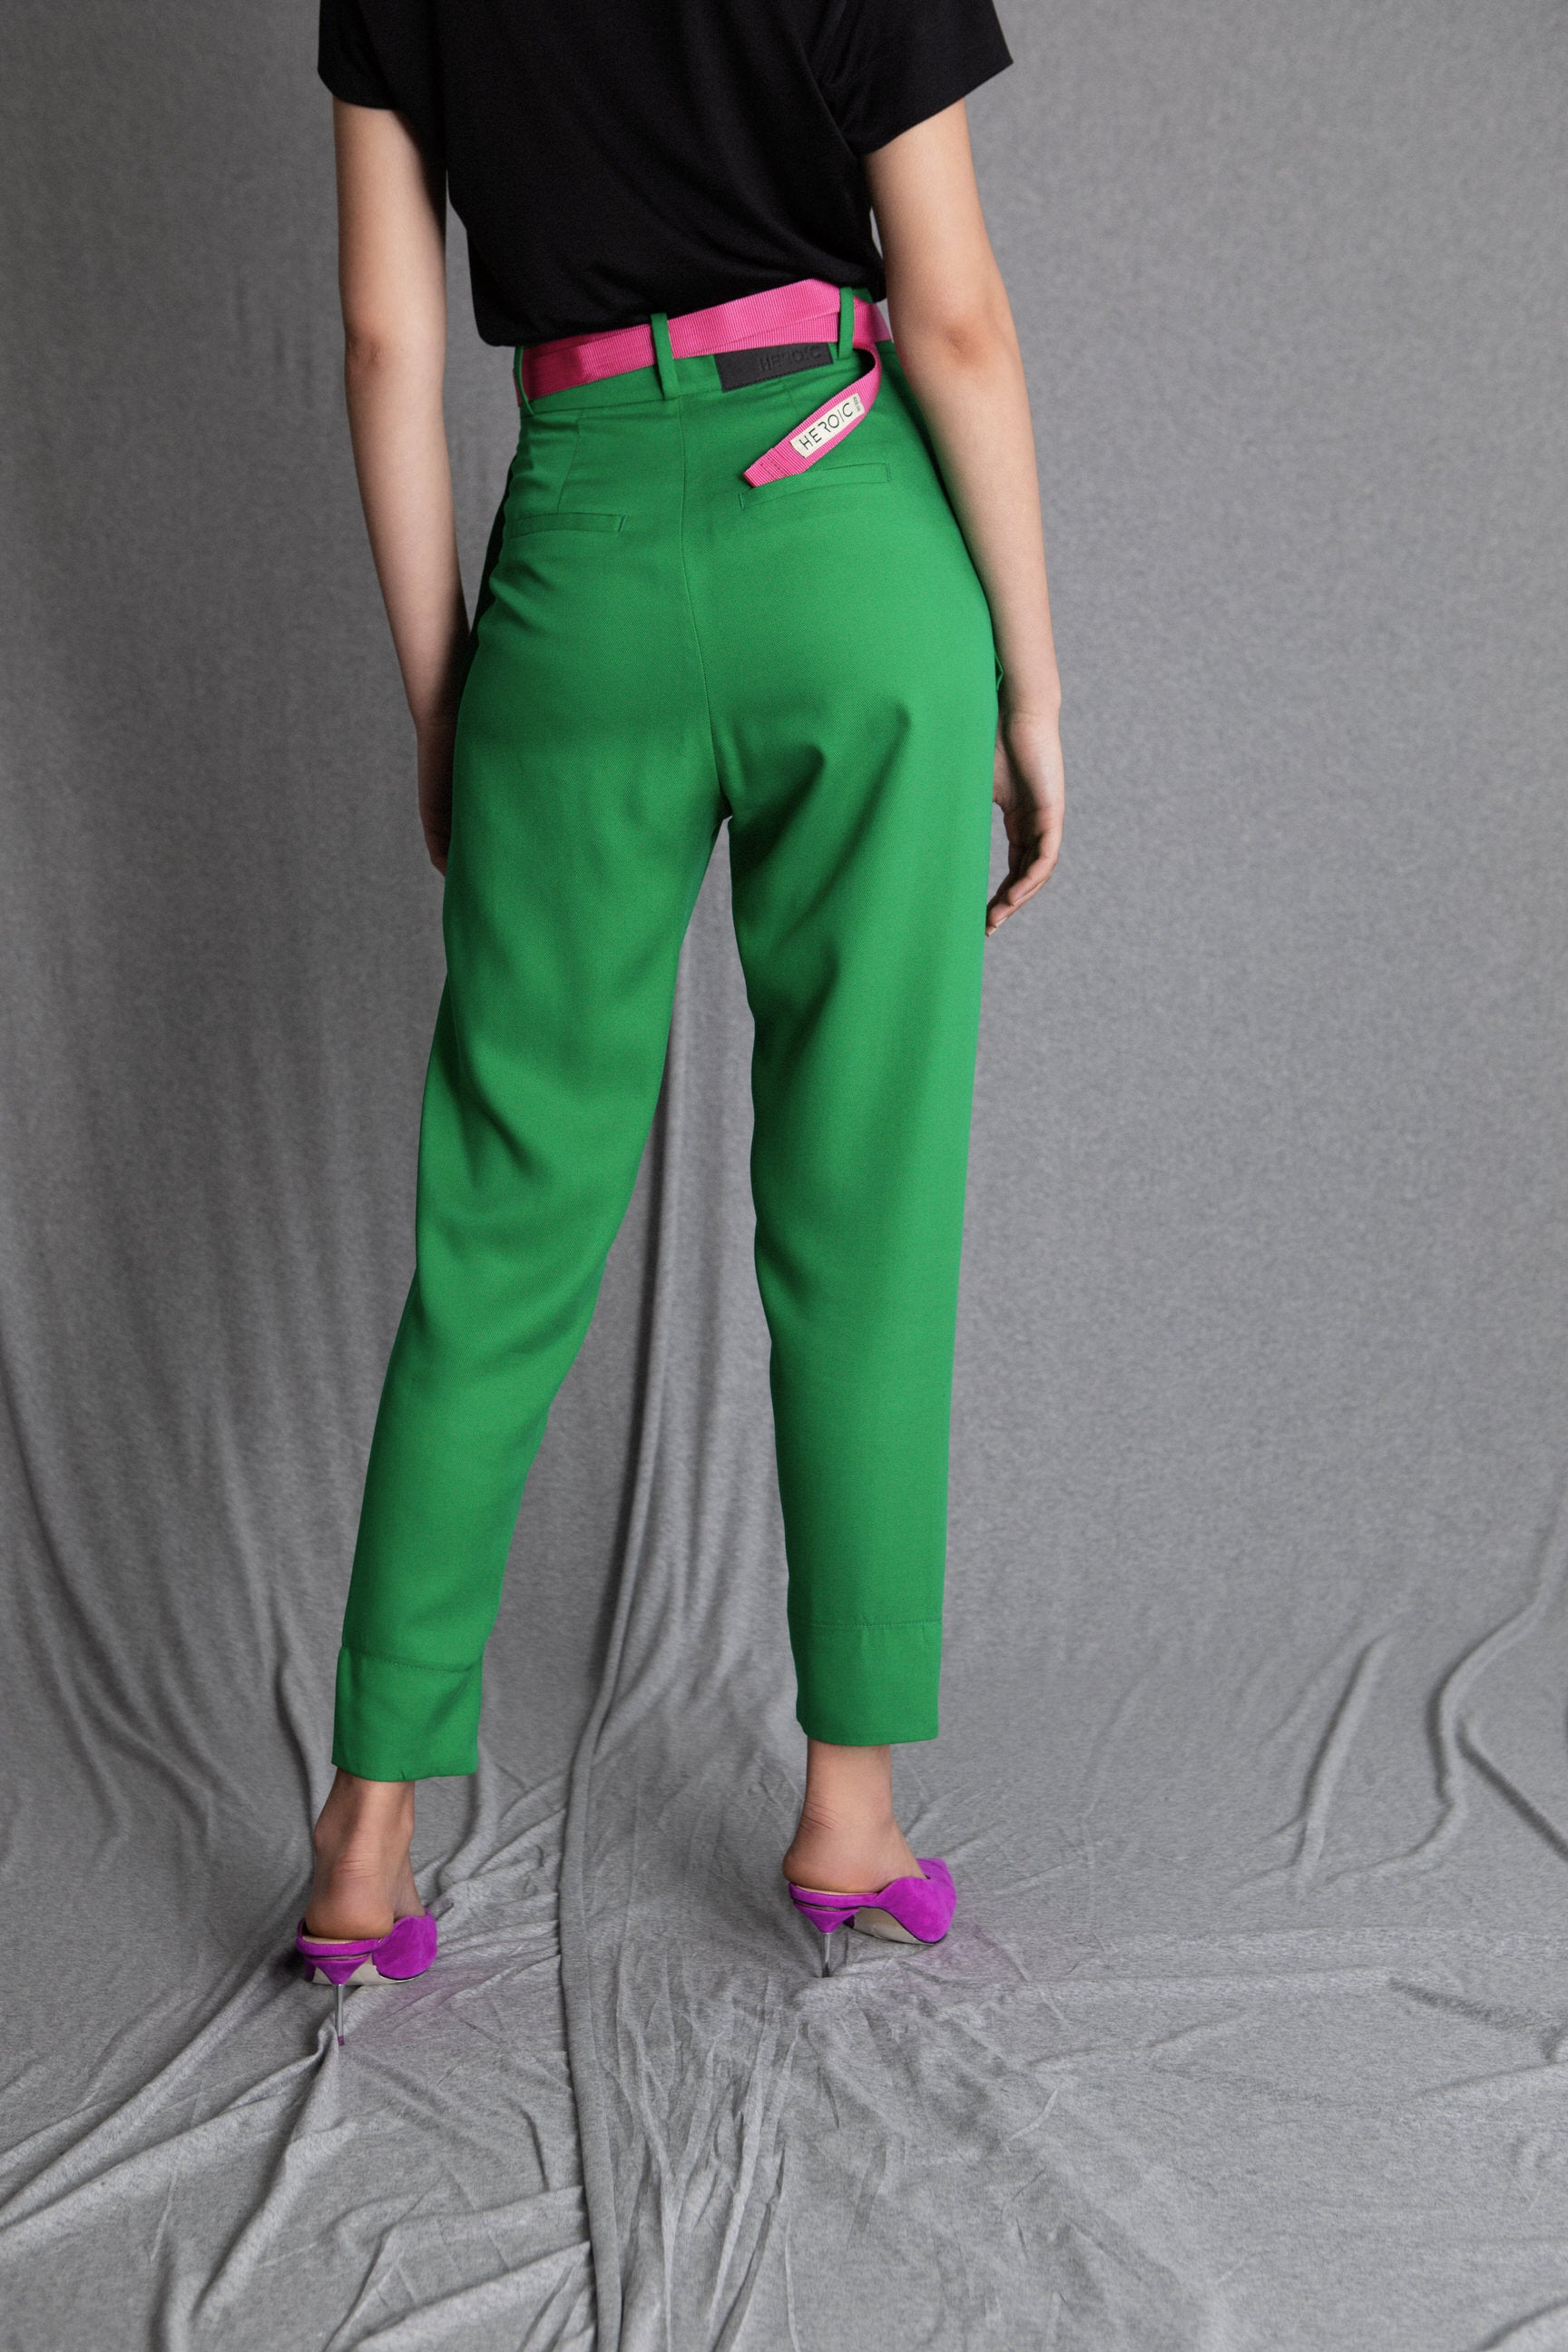 KILLER green pants - heroic-online